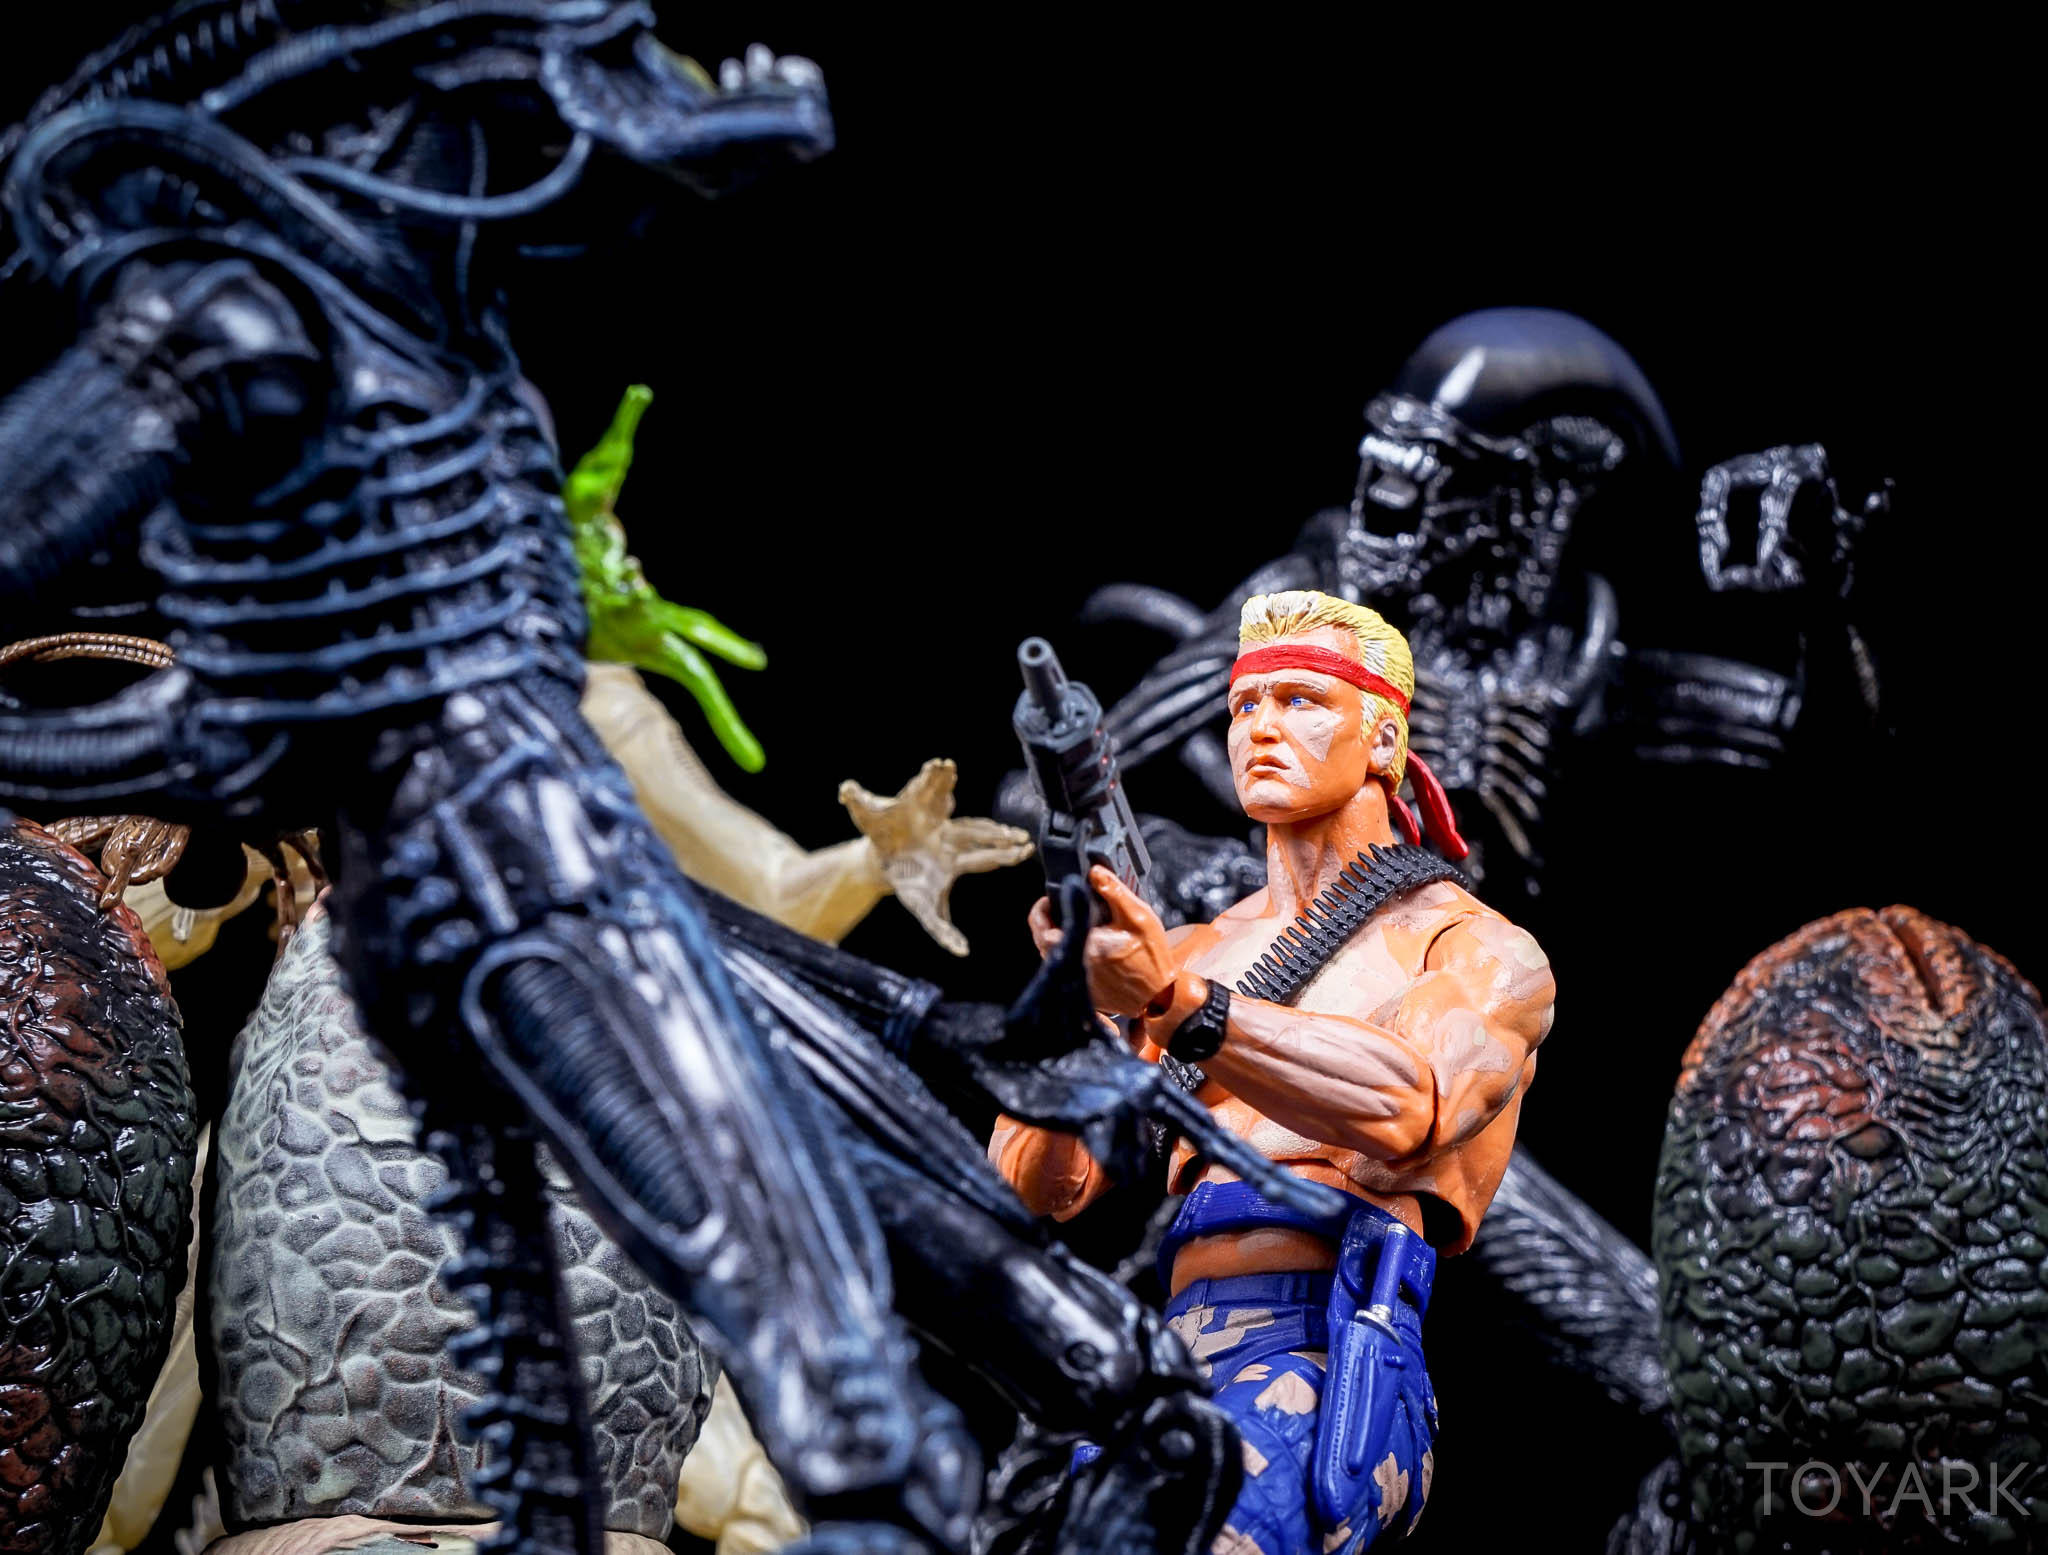 http://news.toyark.com/wp-content/uploads/sites/4/2016/08/NECA-Contra-VGA-053.jpg